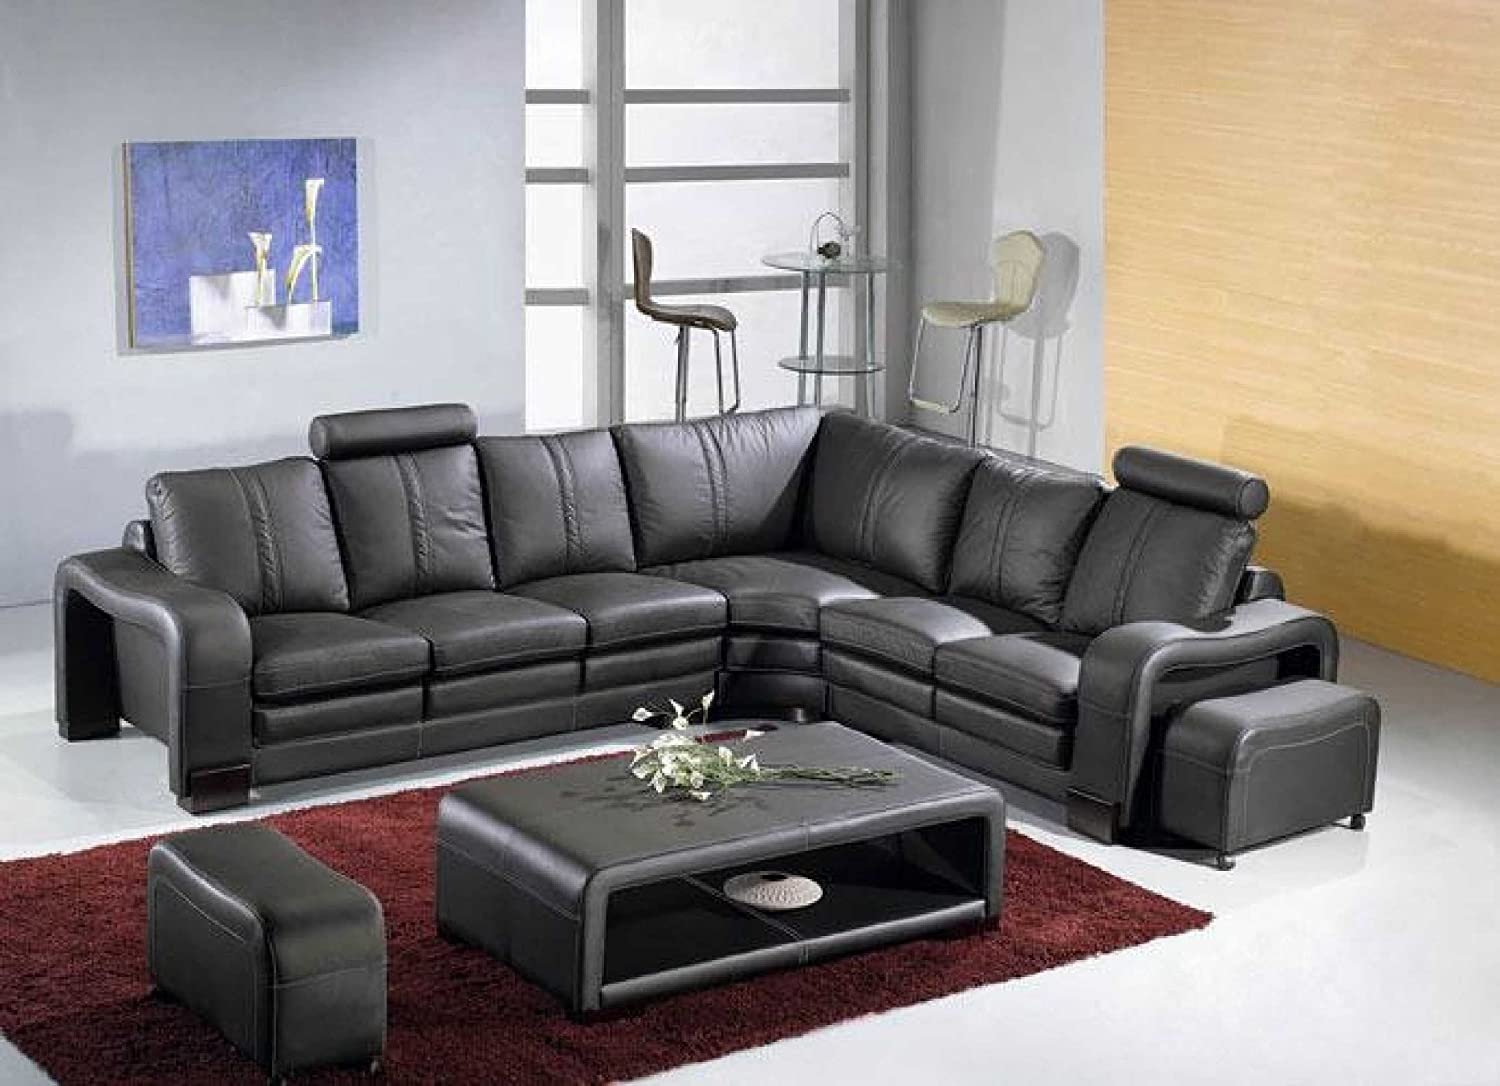 Vig Furniture Ev 3330 - Modern Black Leather Sectional Sofa